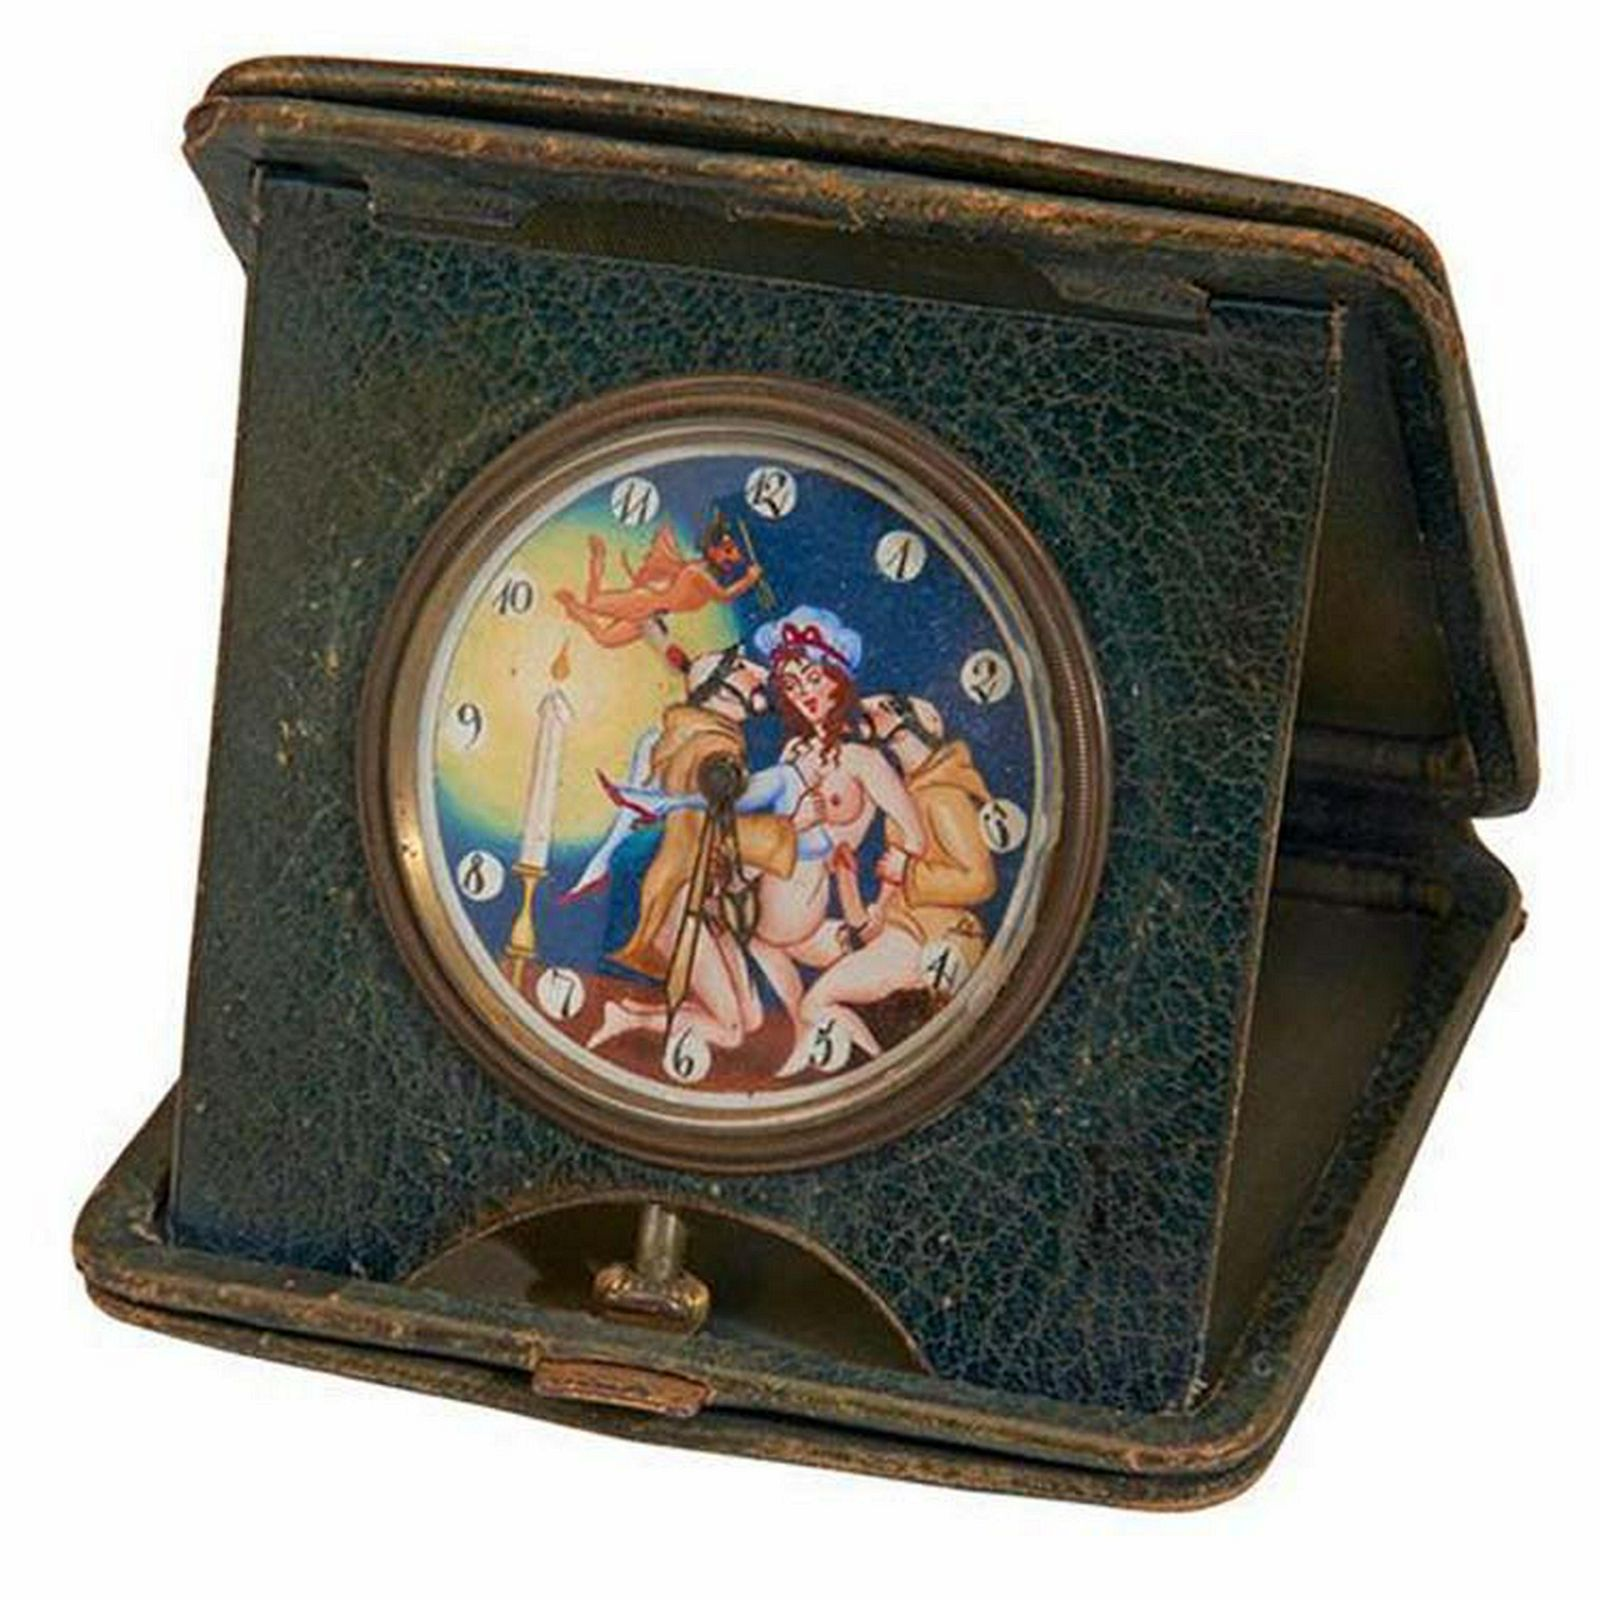 Erotic leather-cased automated travel clock